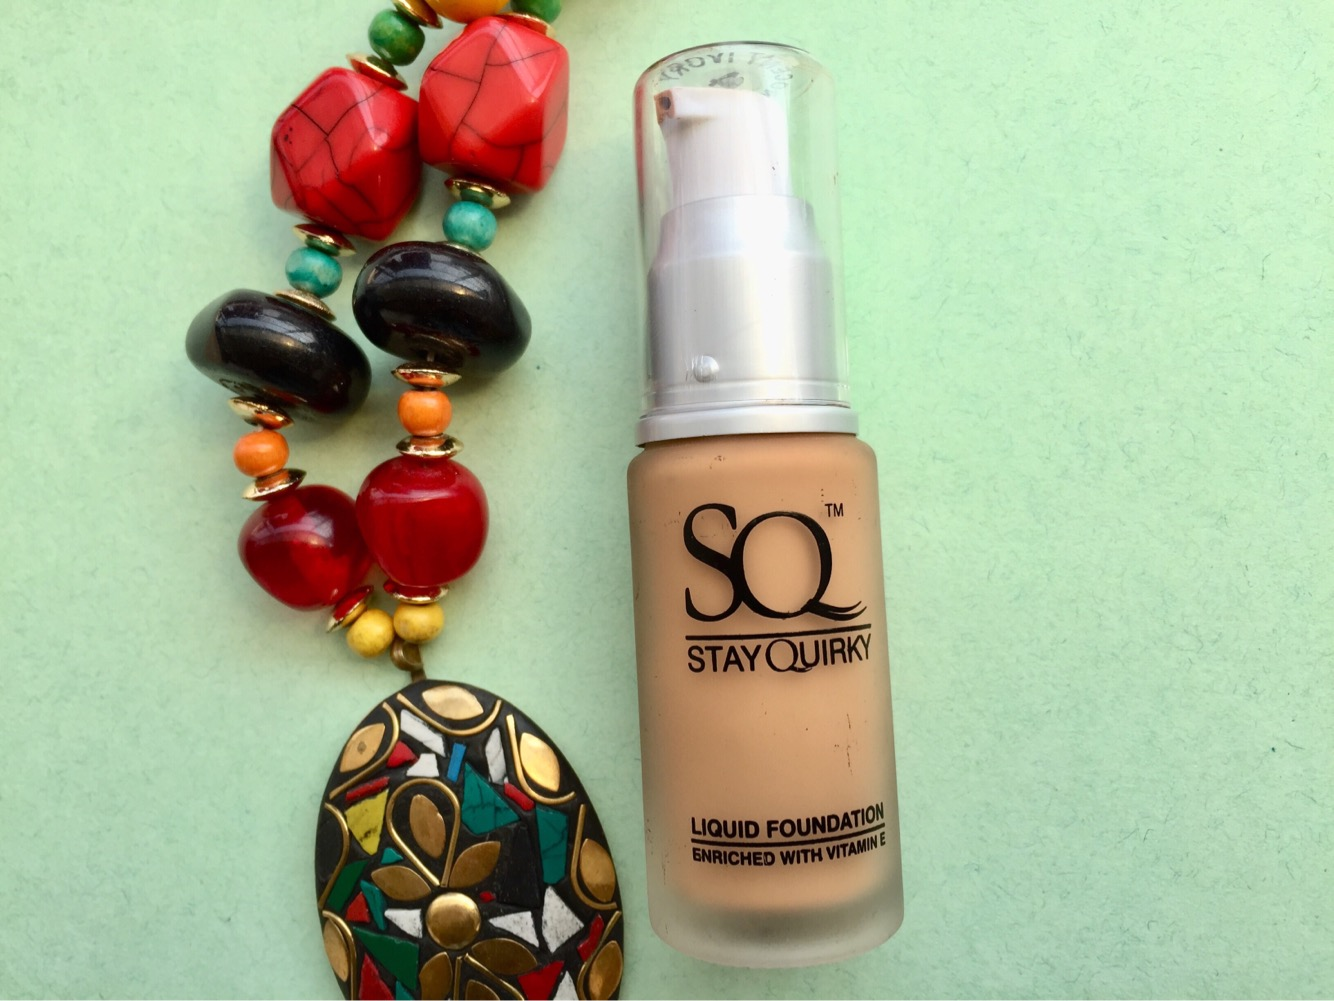 Stay quirky liquid foundation review and swatches| Rs. 245